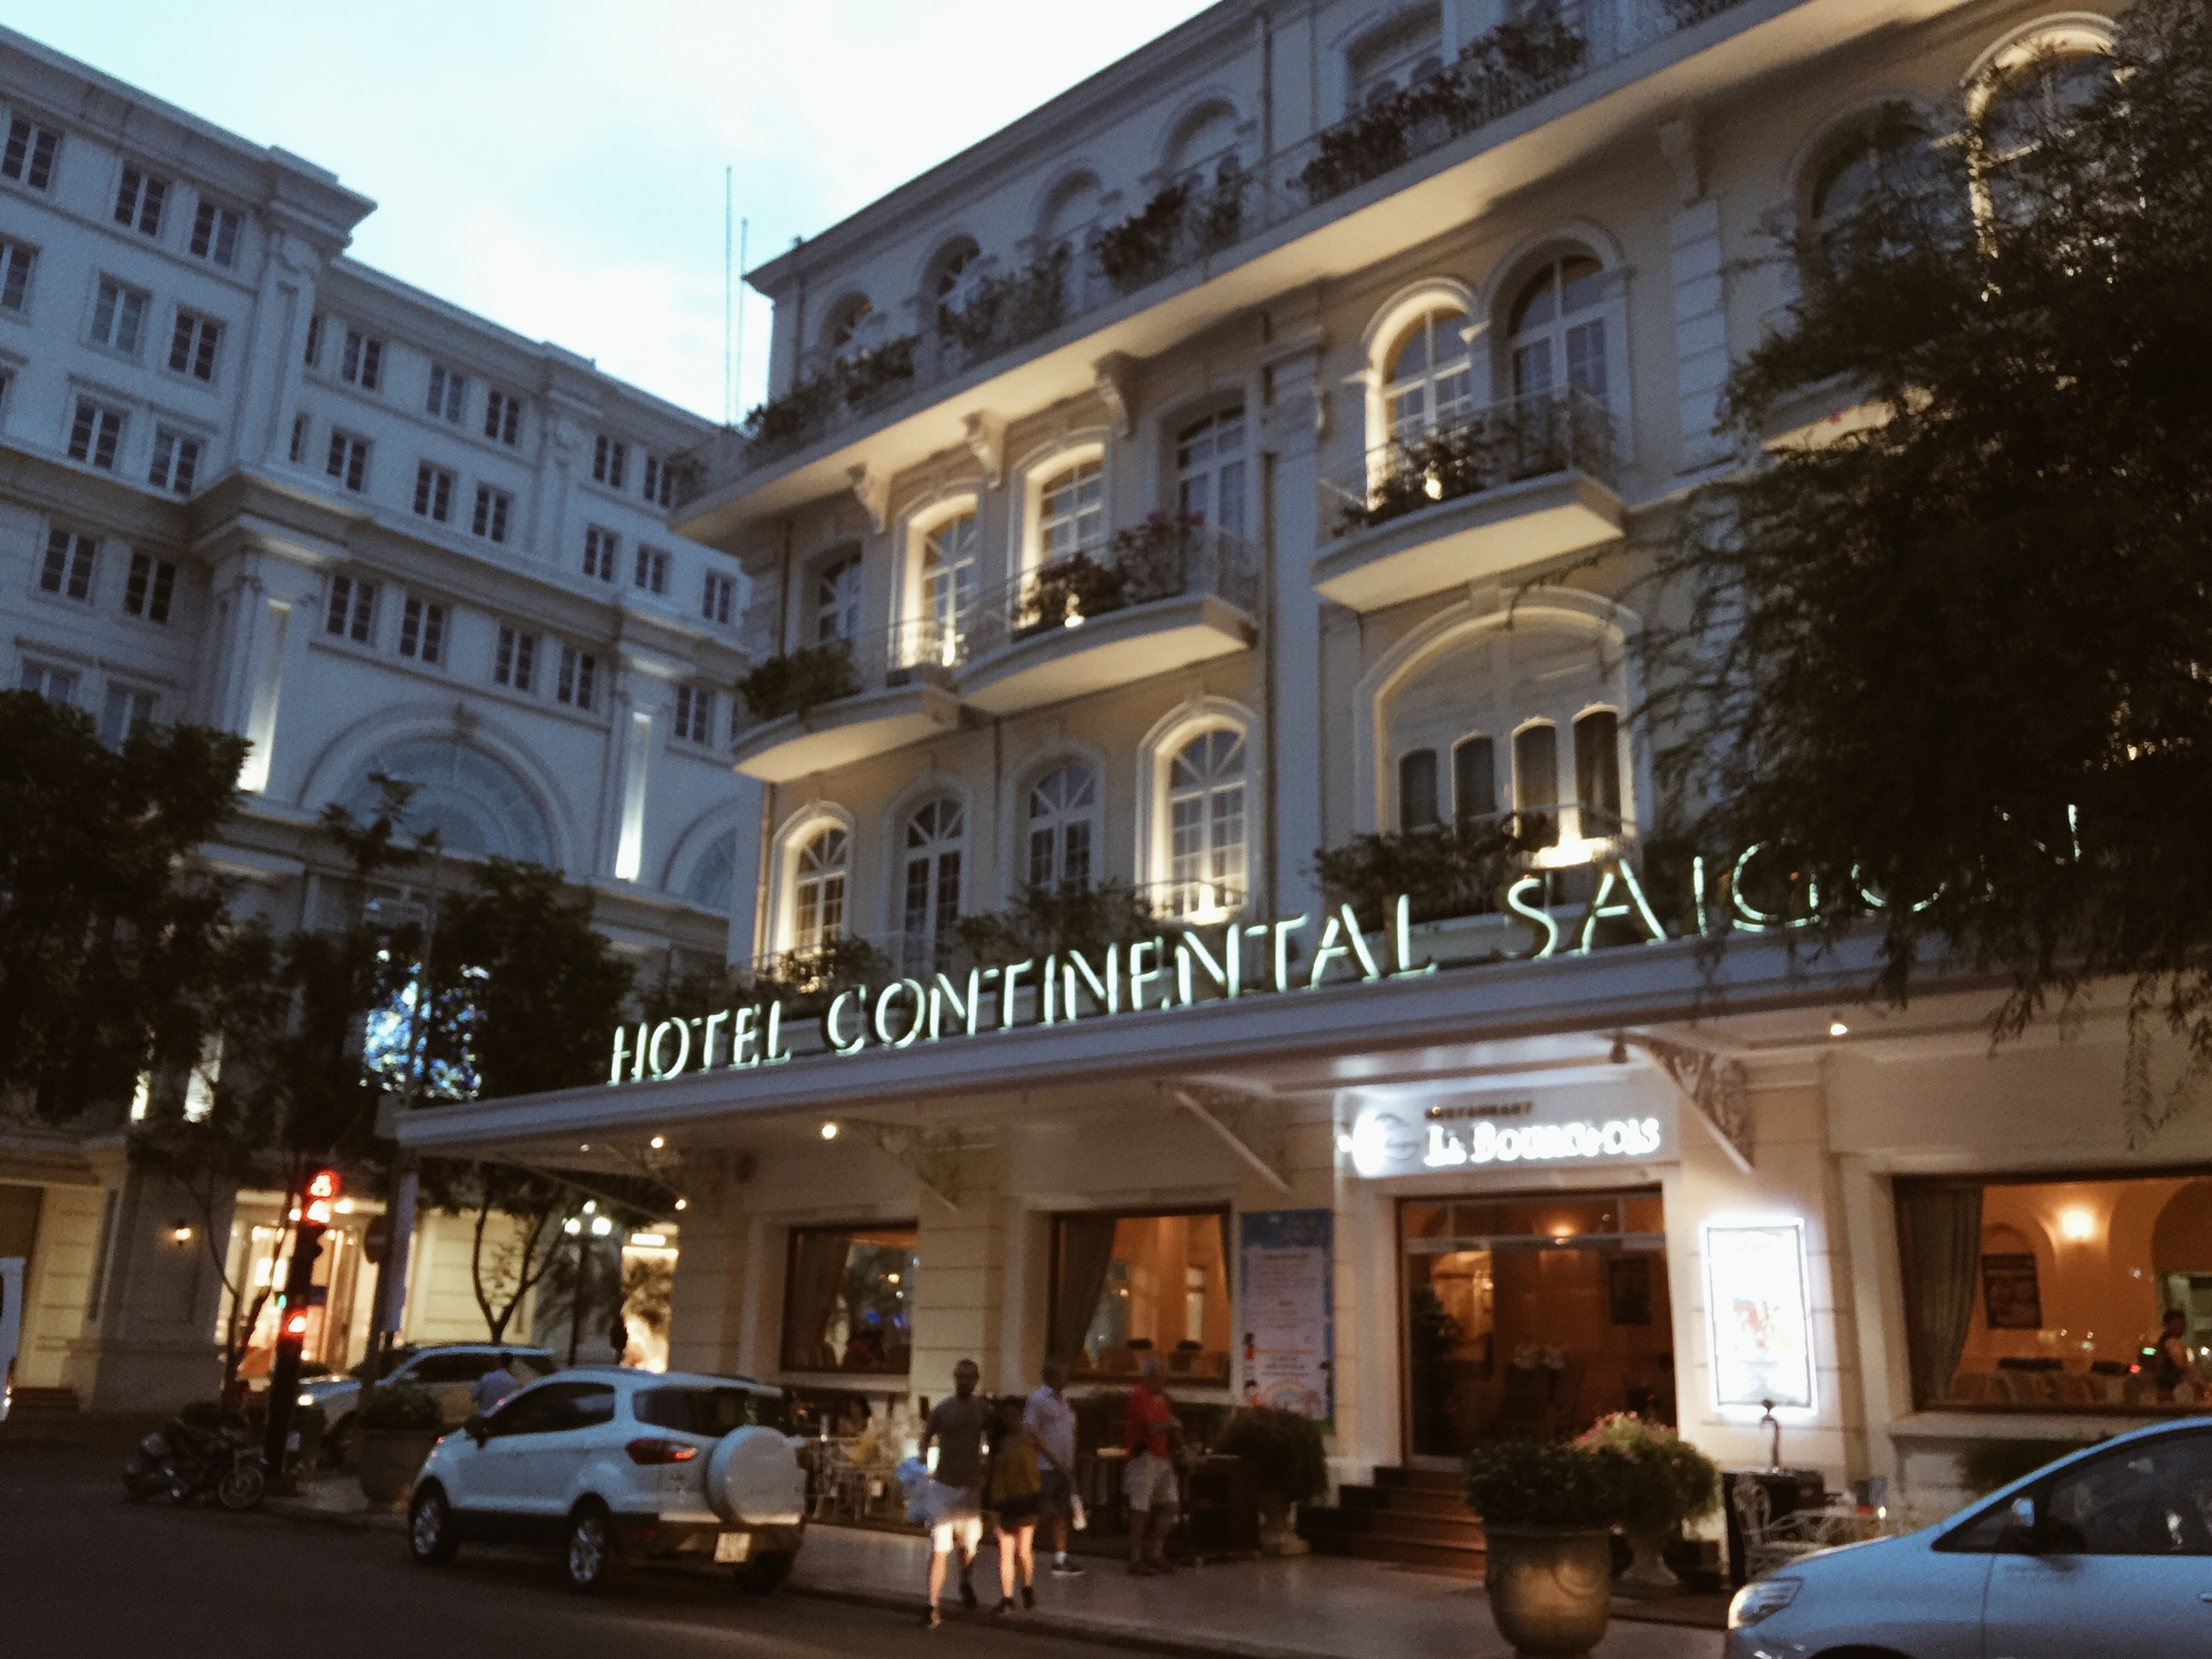 We stayed at the Hotel Continental Saigon, where Graham Greene wrote The Quiet American and where a good bit of the book is set.